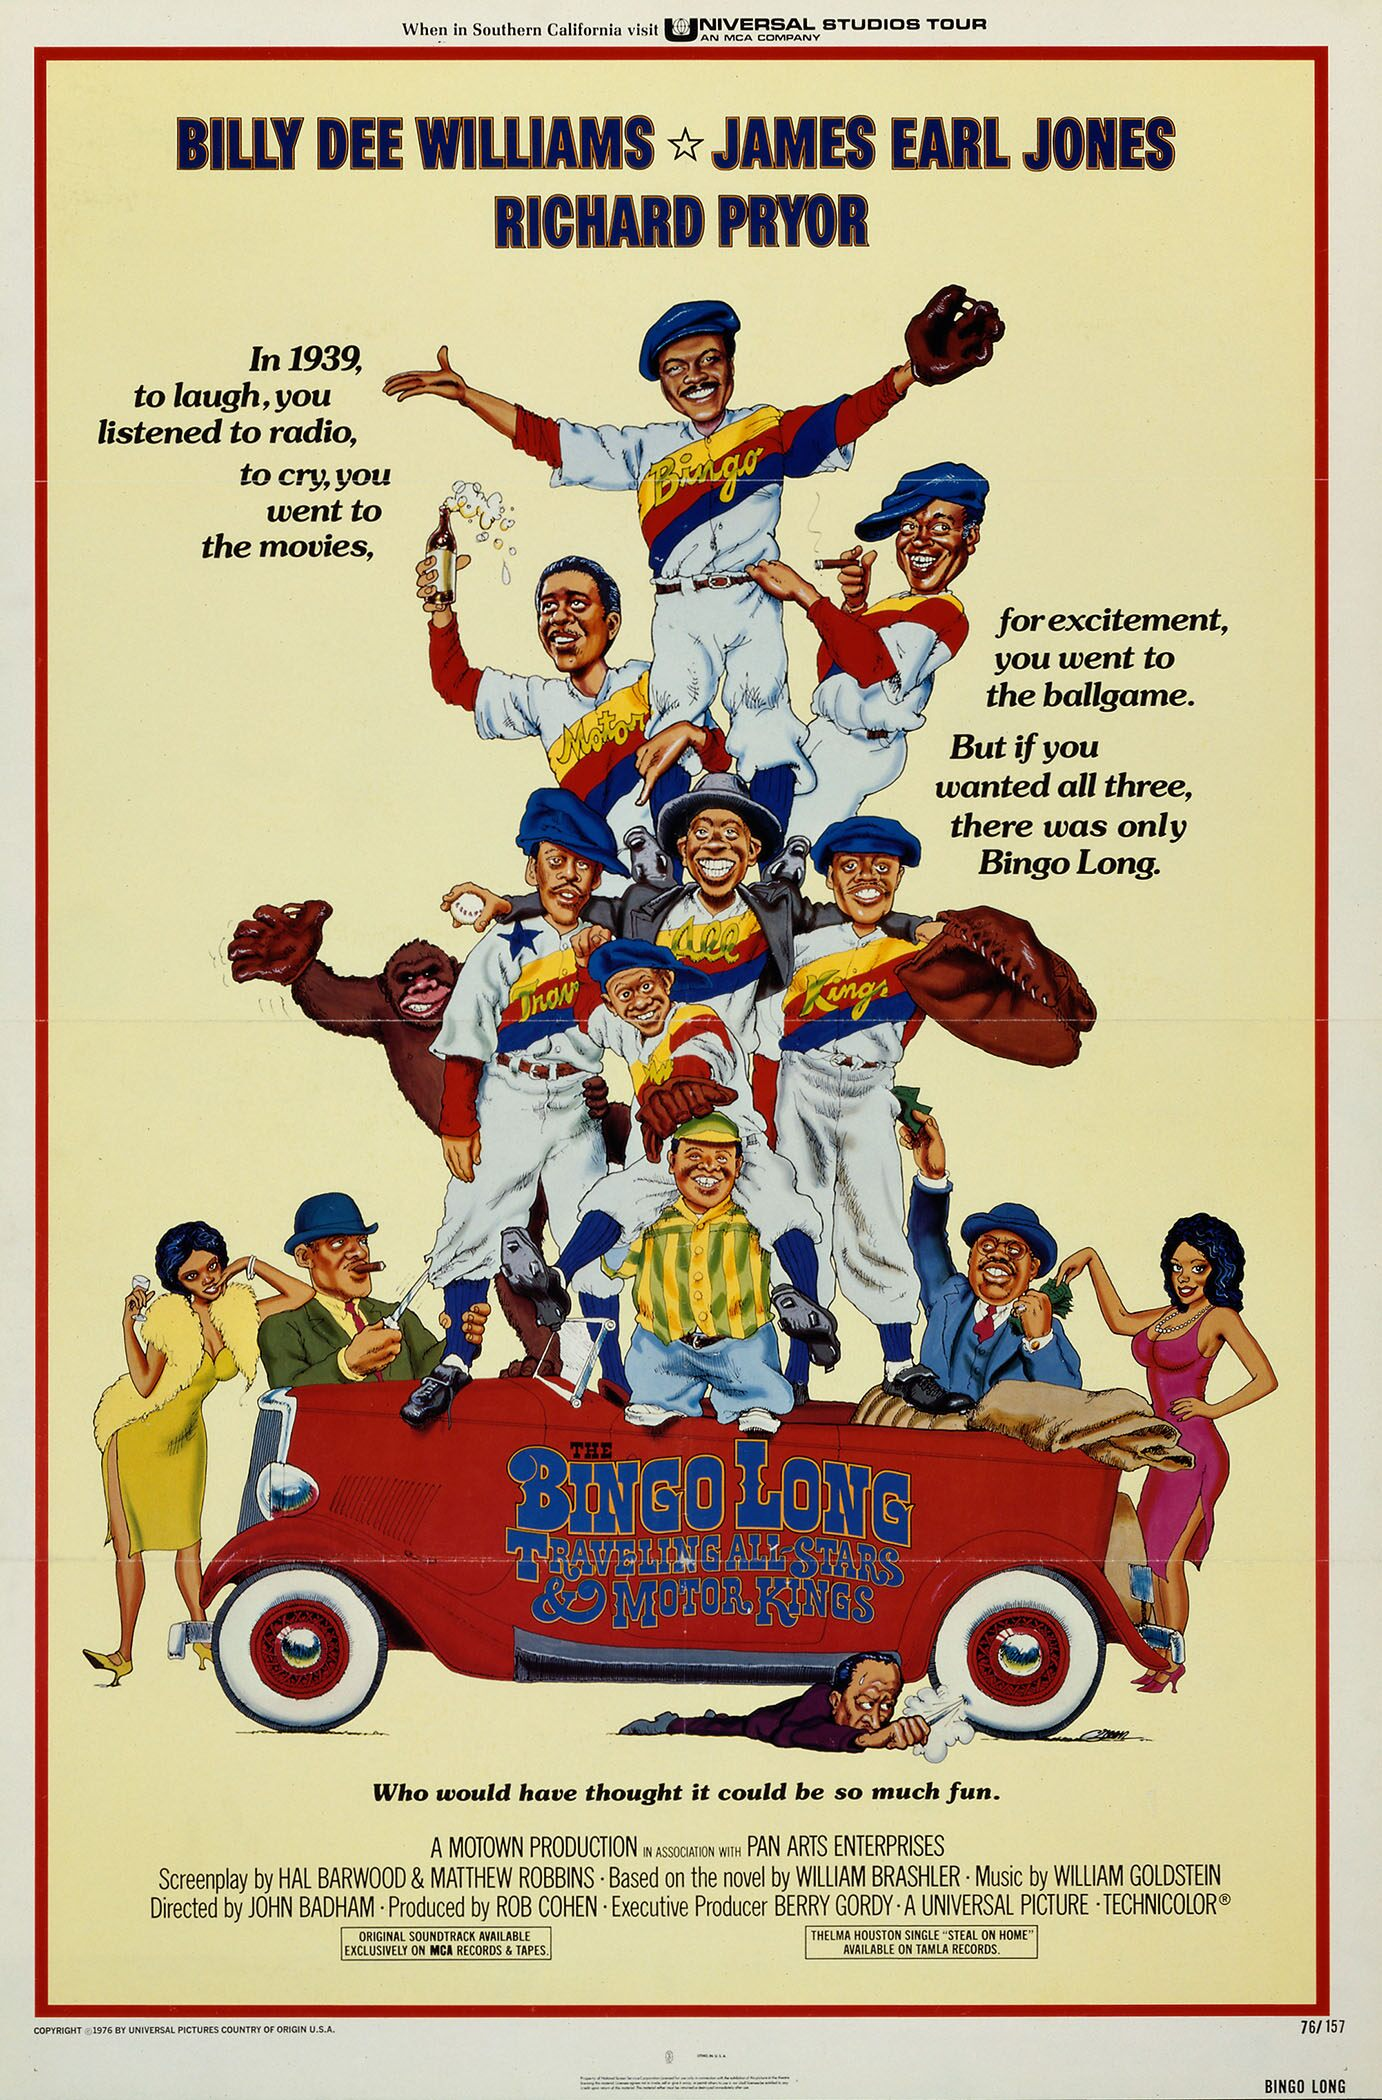 U.S. theatrical poster